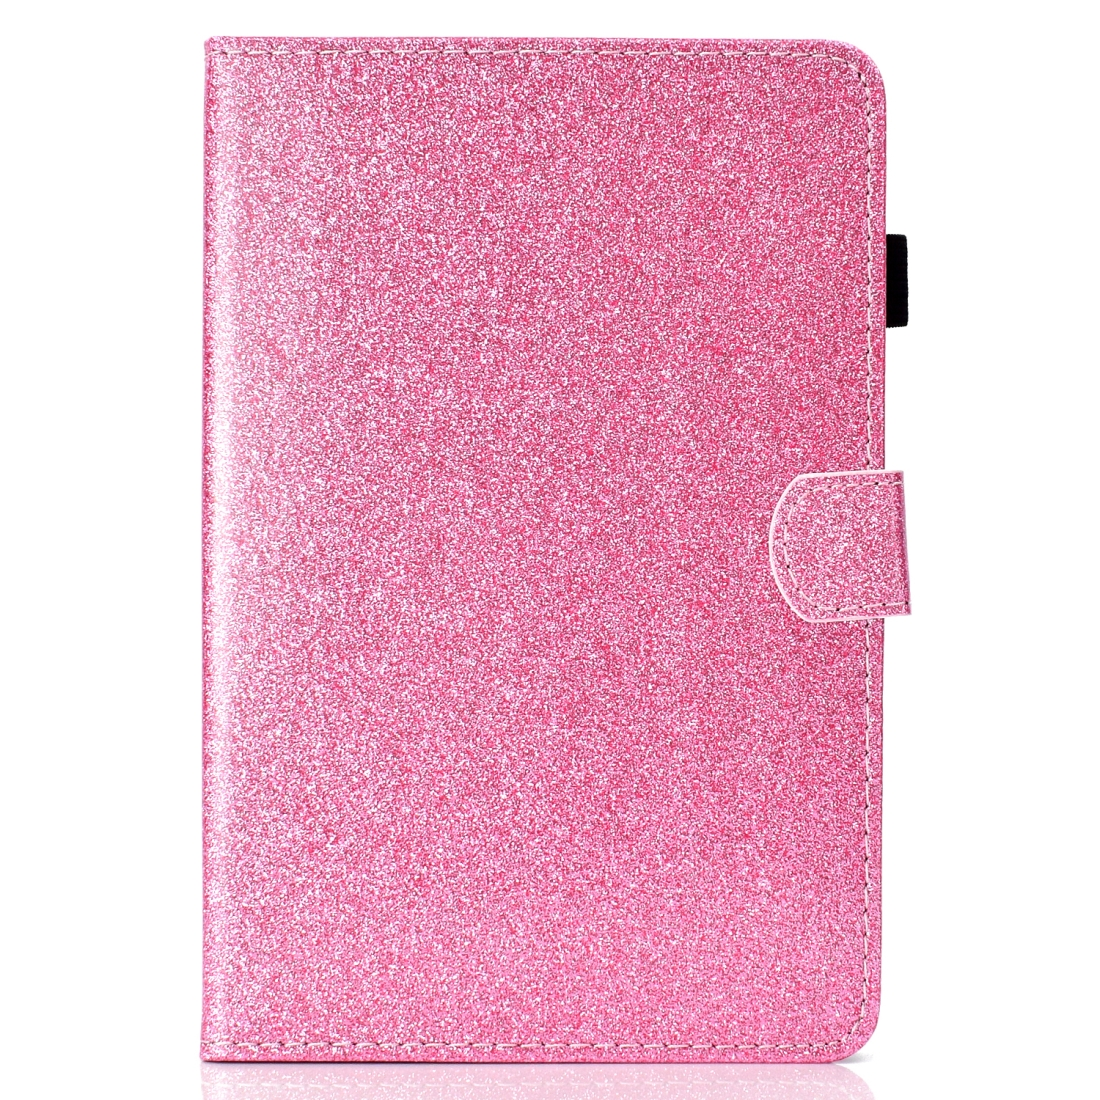 Bling Glitter Leather iPad Mini 5 Case, Also Fits iPad Mini 1,2,3,4, With Sleeve (Pink)